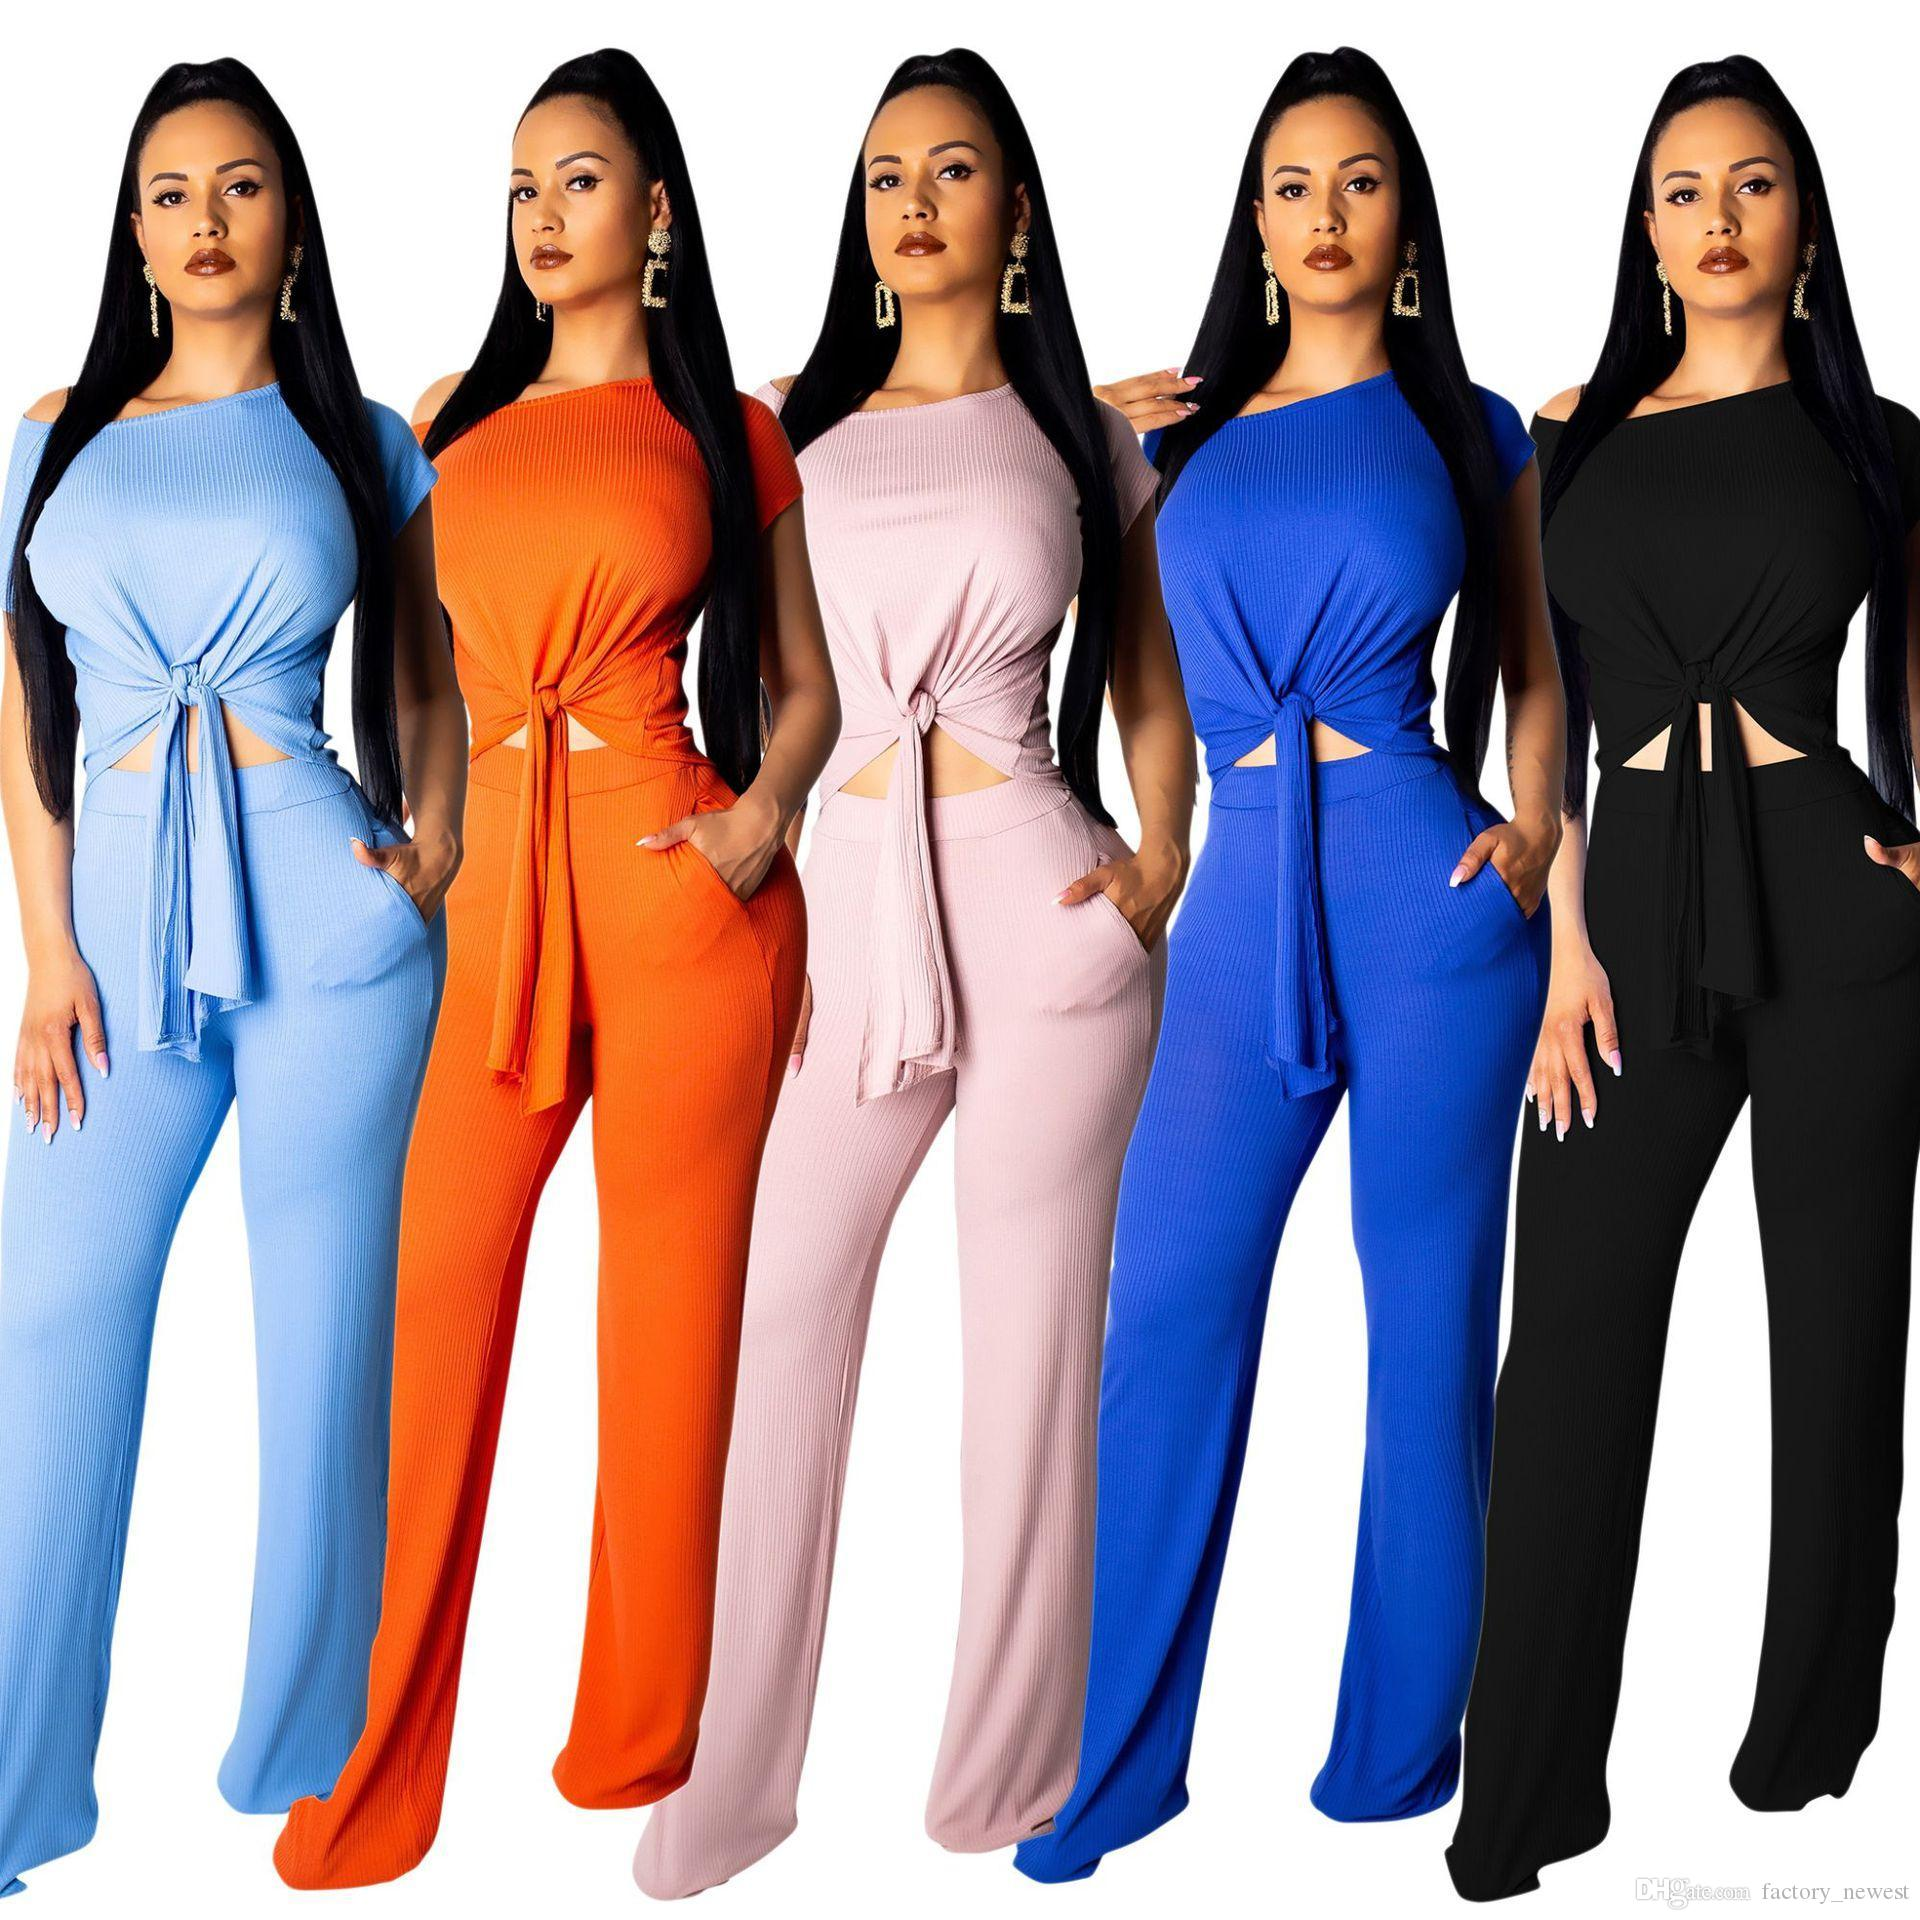 2fe0a598710 2019 New Women Summer Knitted Short Sleeve Bandage Crop Tops Sweater T Shirt  +Wide Leg Long Pants Set Suit Outfits For Ladies From Factory newest